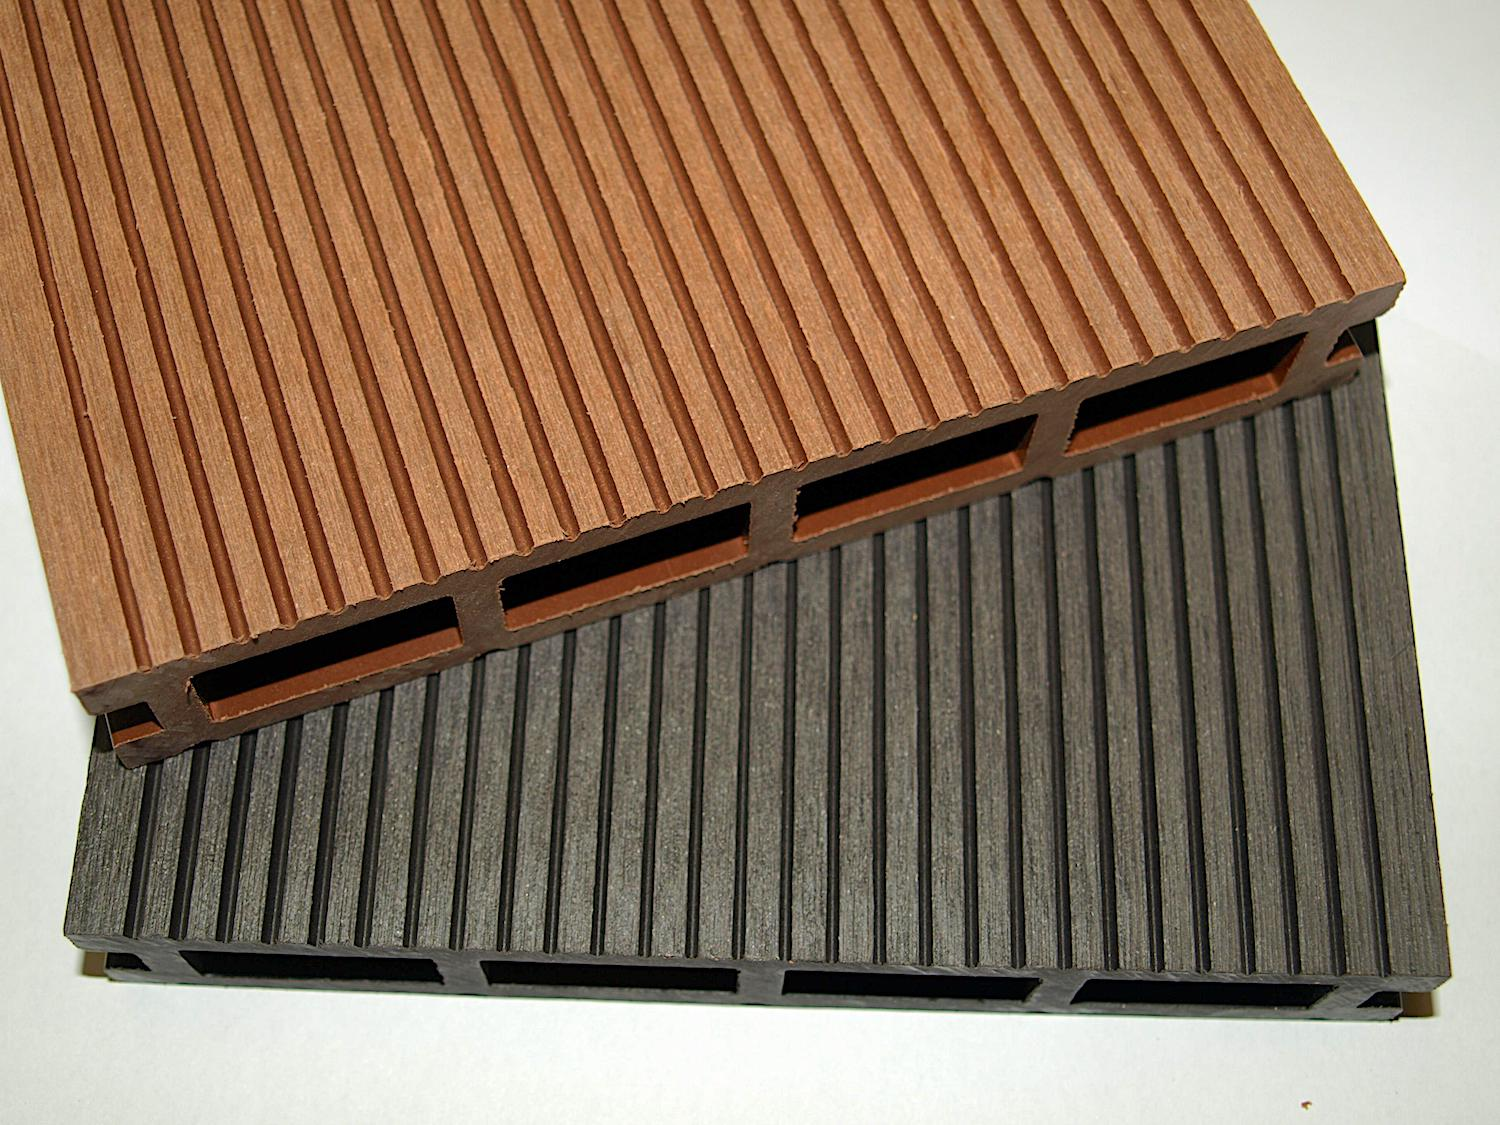 Composite grooved side charcoal cedar deck board